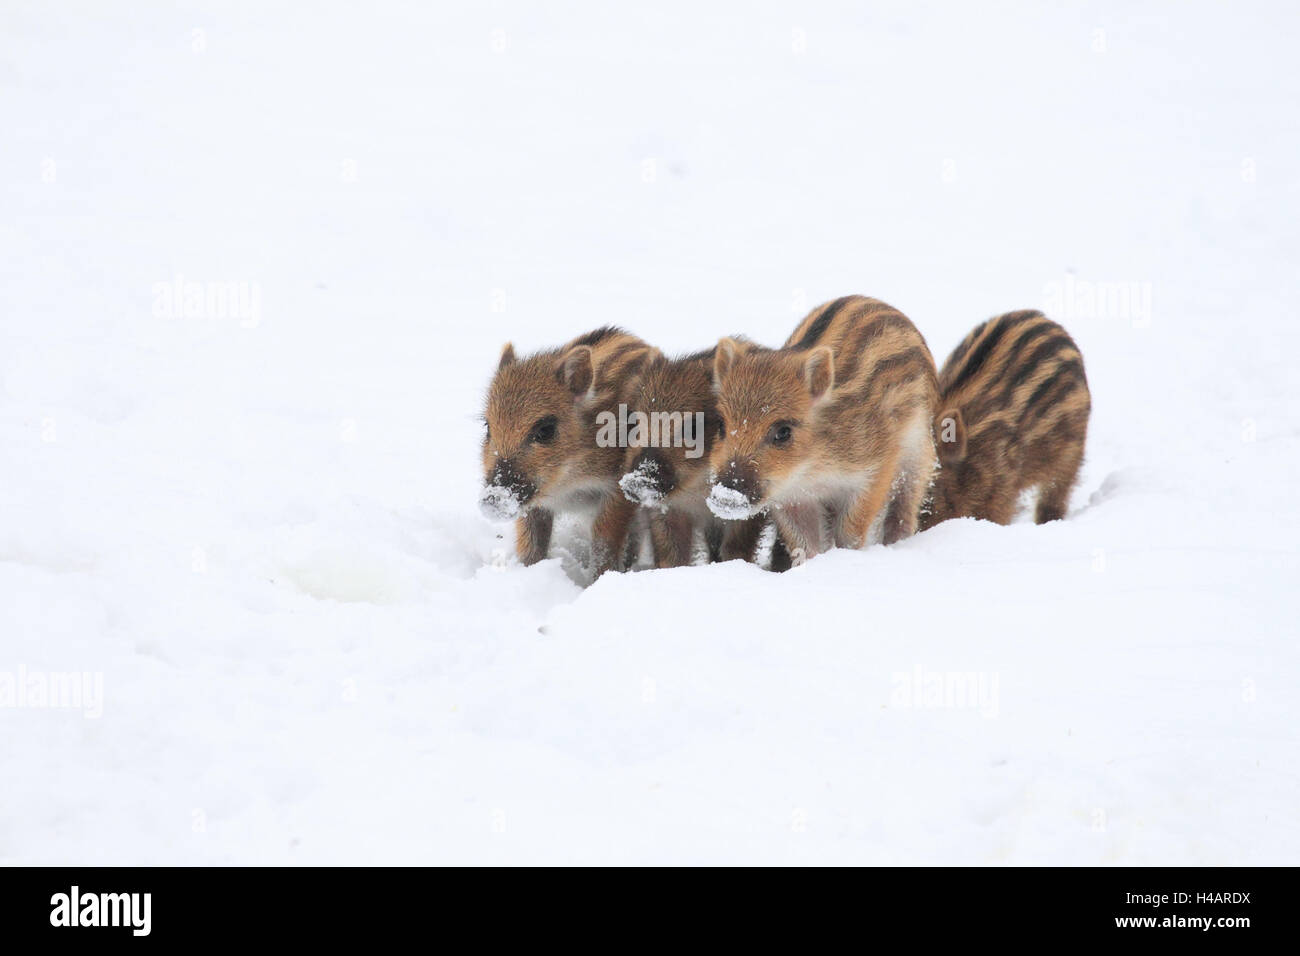 Four young wild boars in the snow, - Stock Image